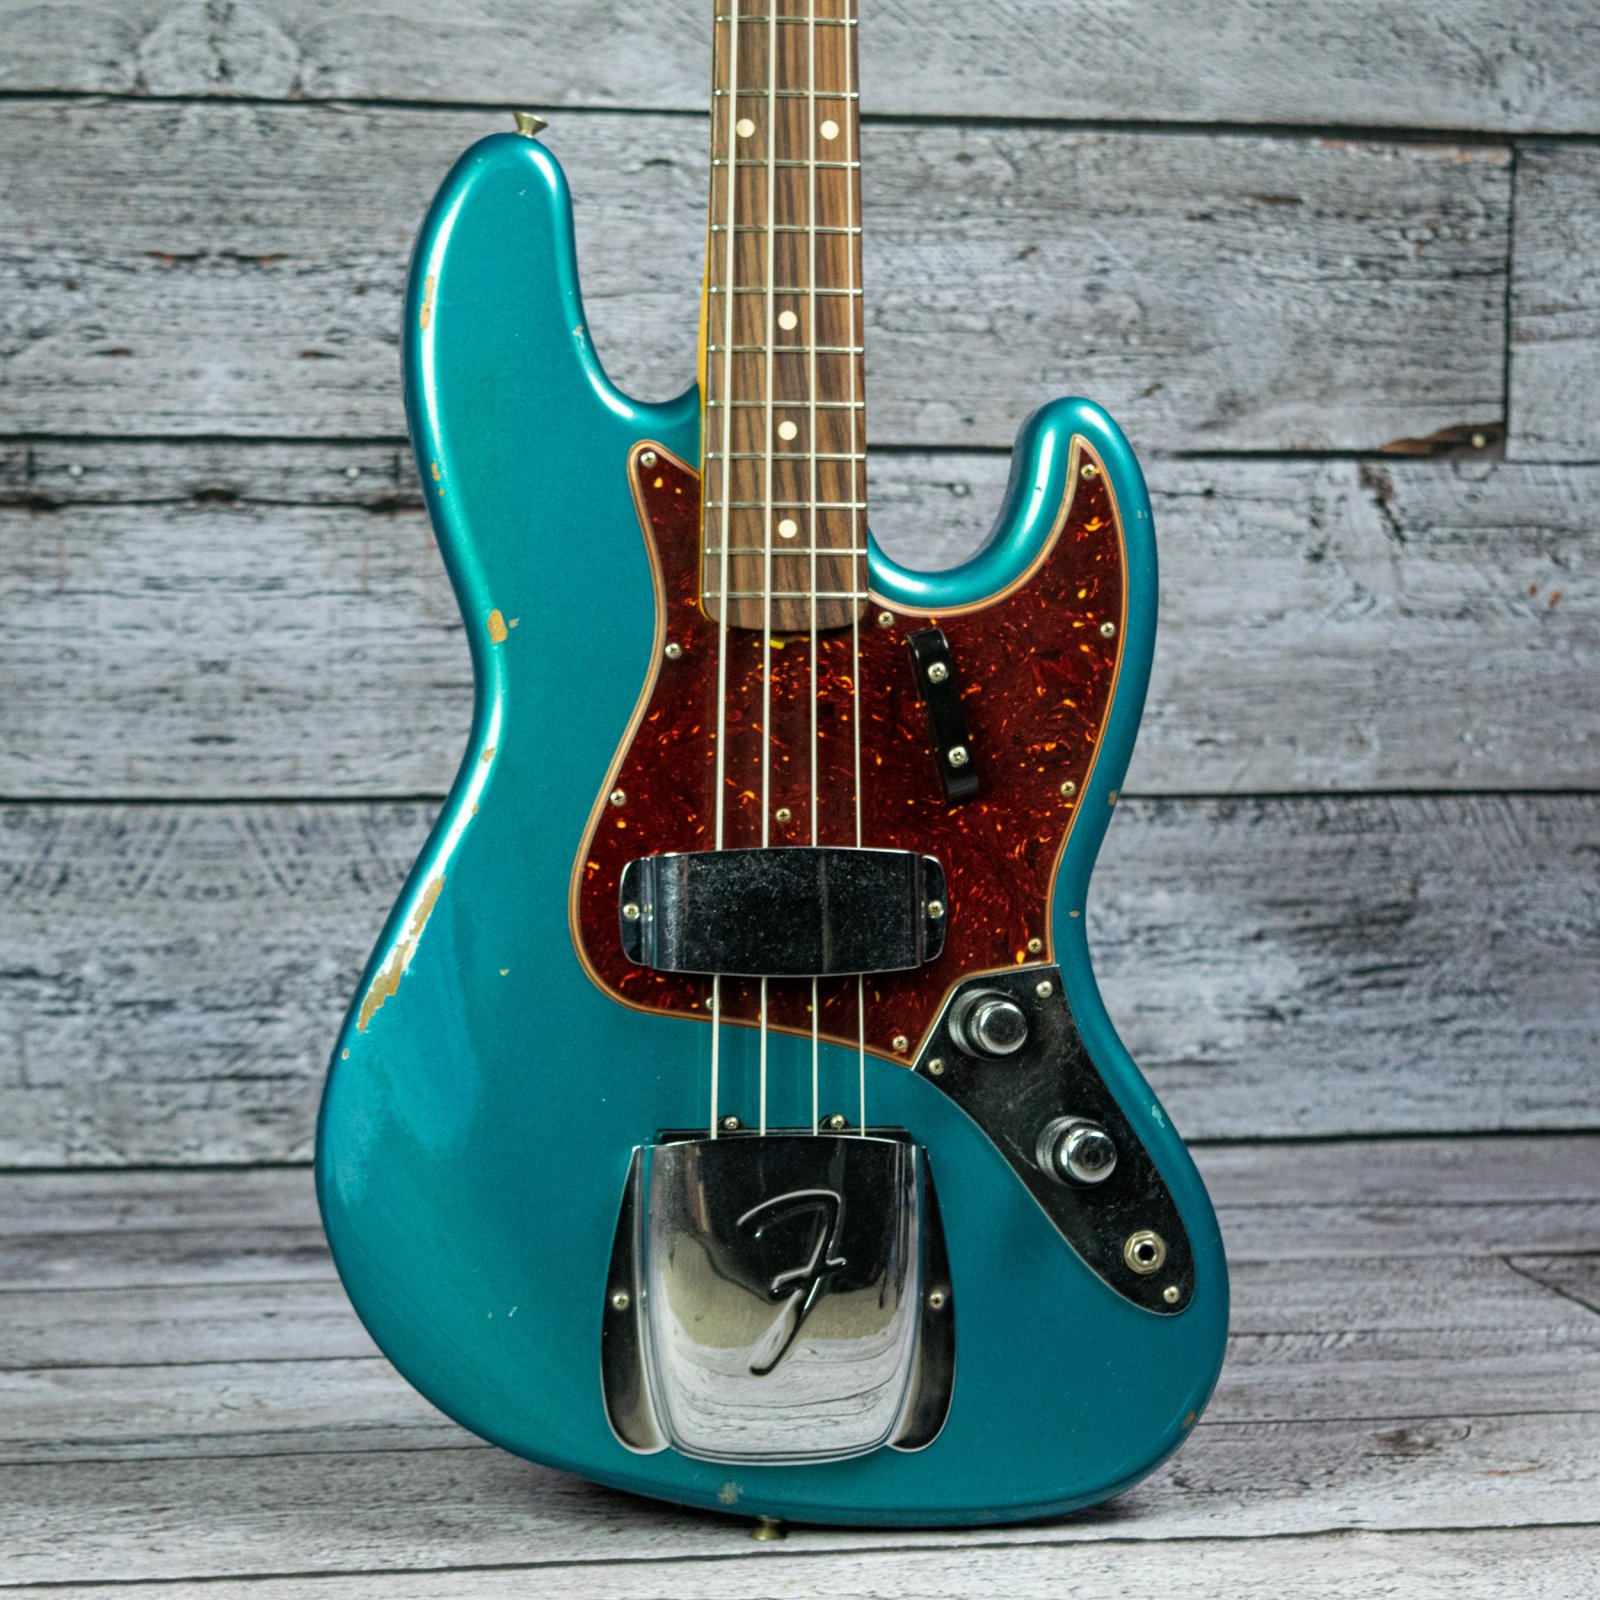 Fender Custom Shop 1960 Jazz Bass Relic (USED)